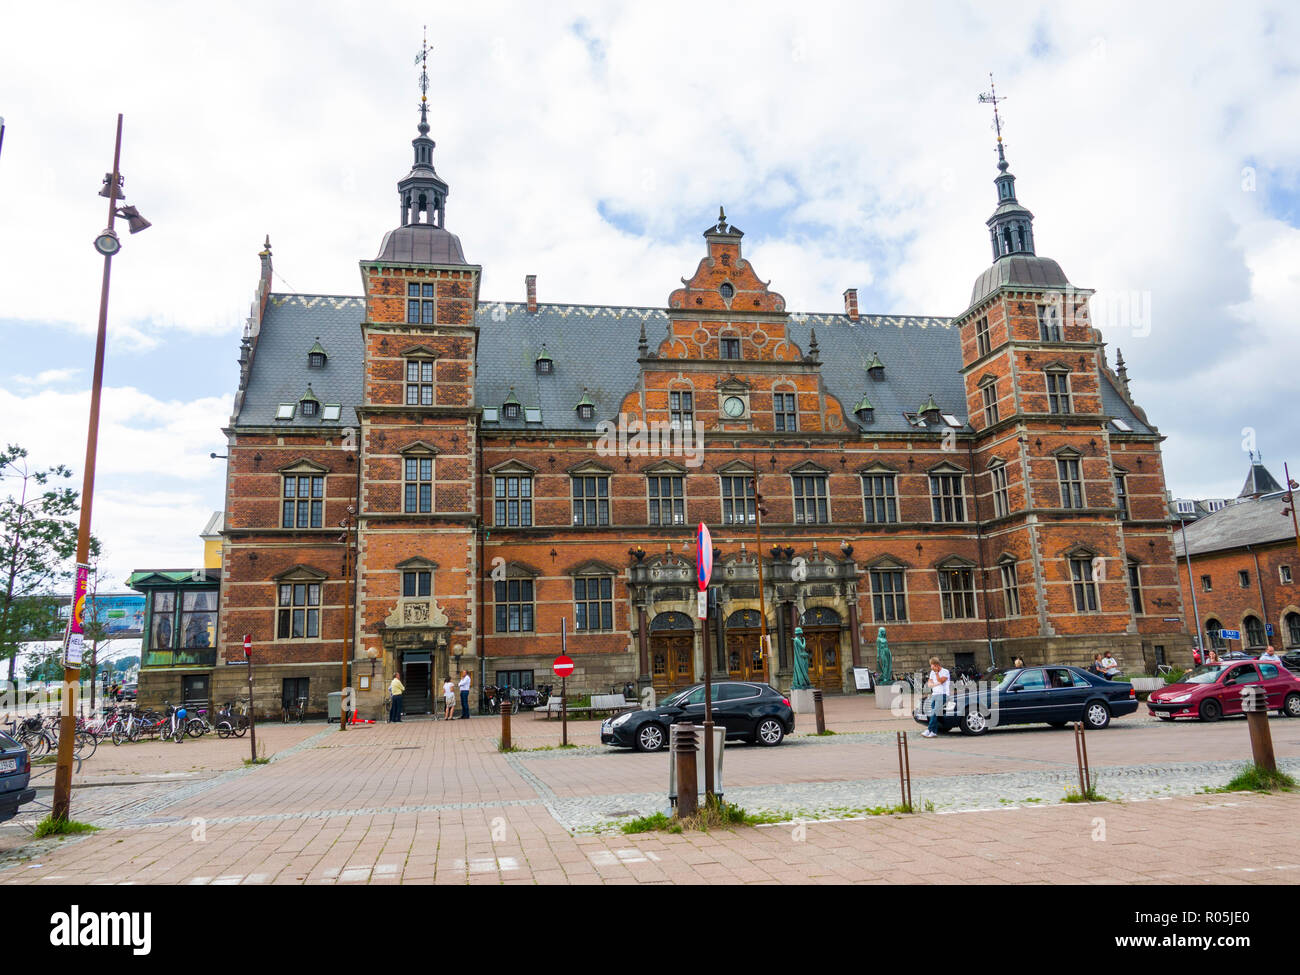 The Train Station in downtown Helsingor also known as Elsinore is a port city in eastern Denmark - Stock Image